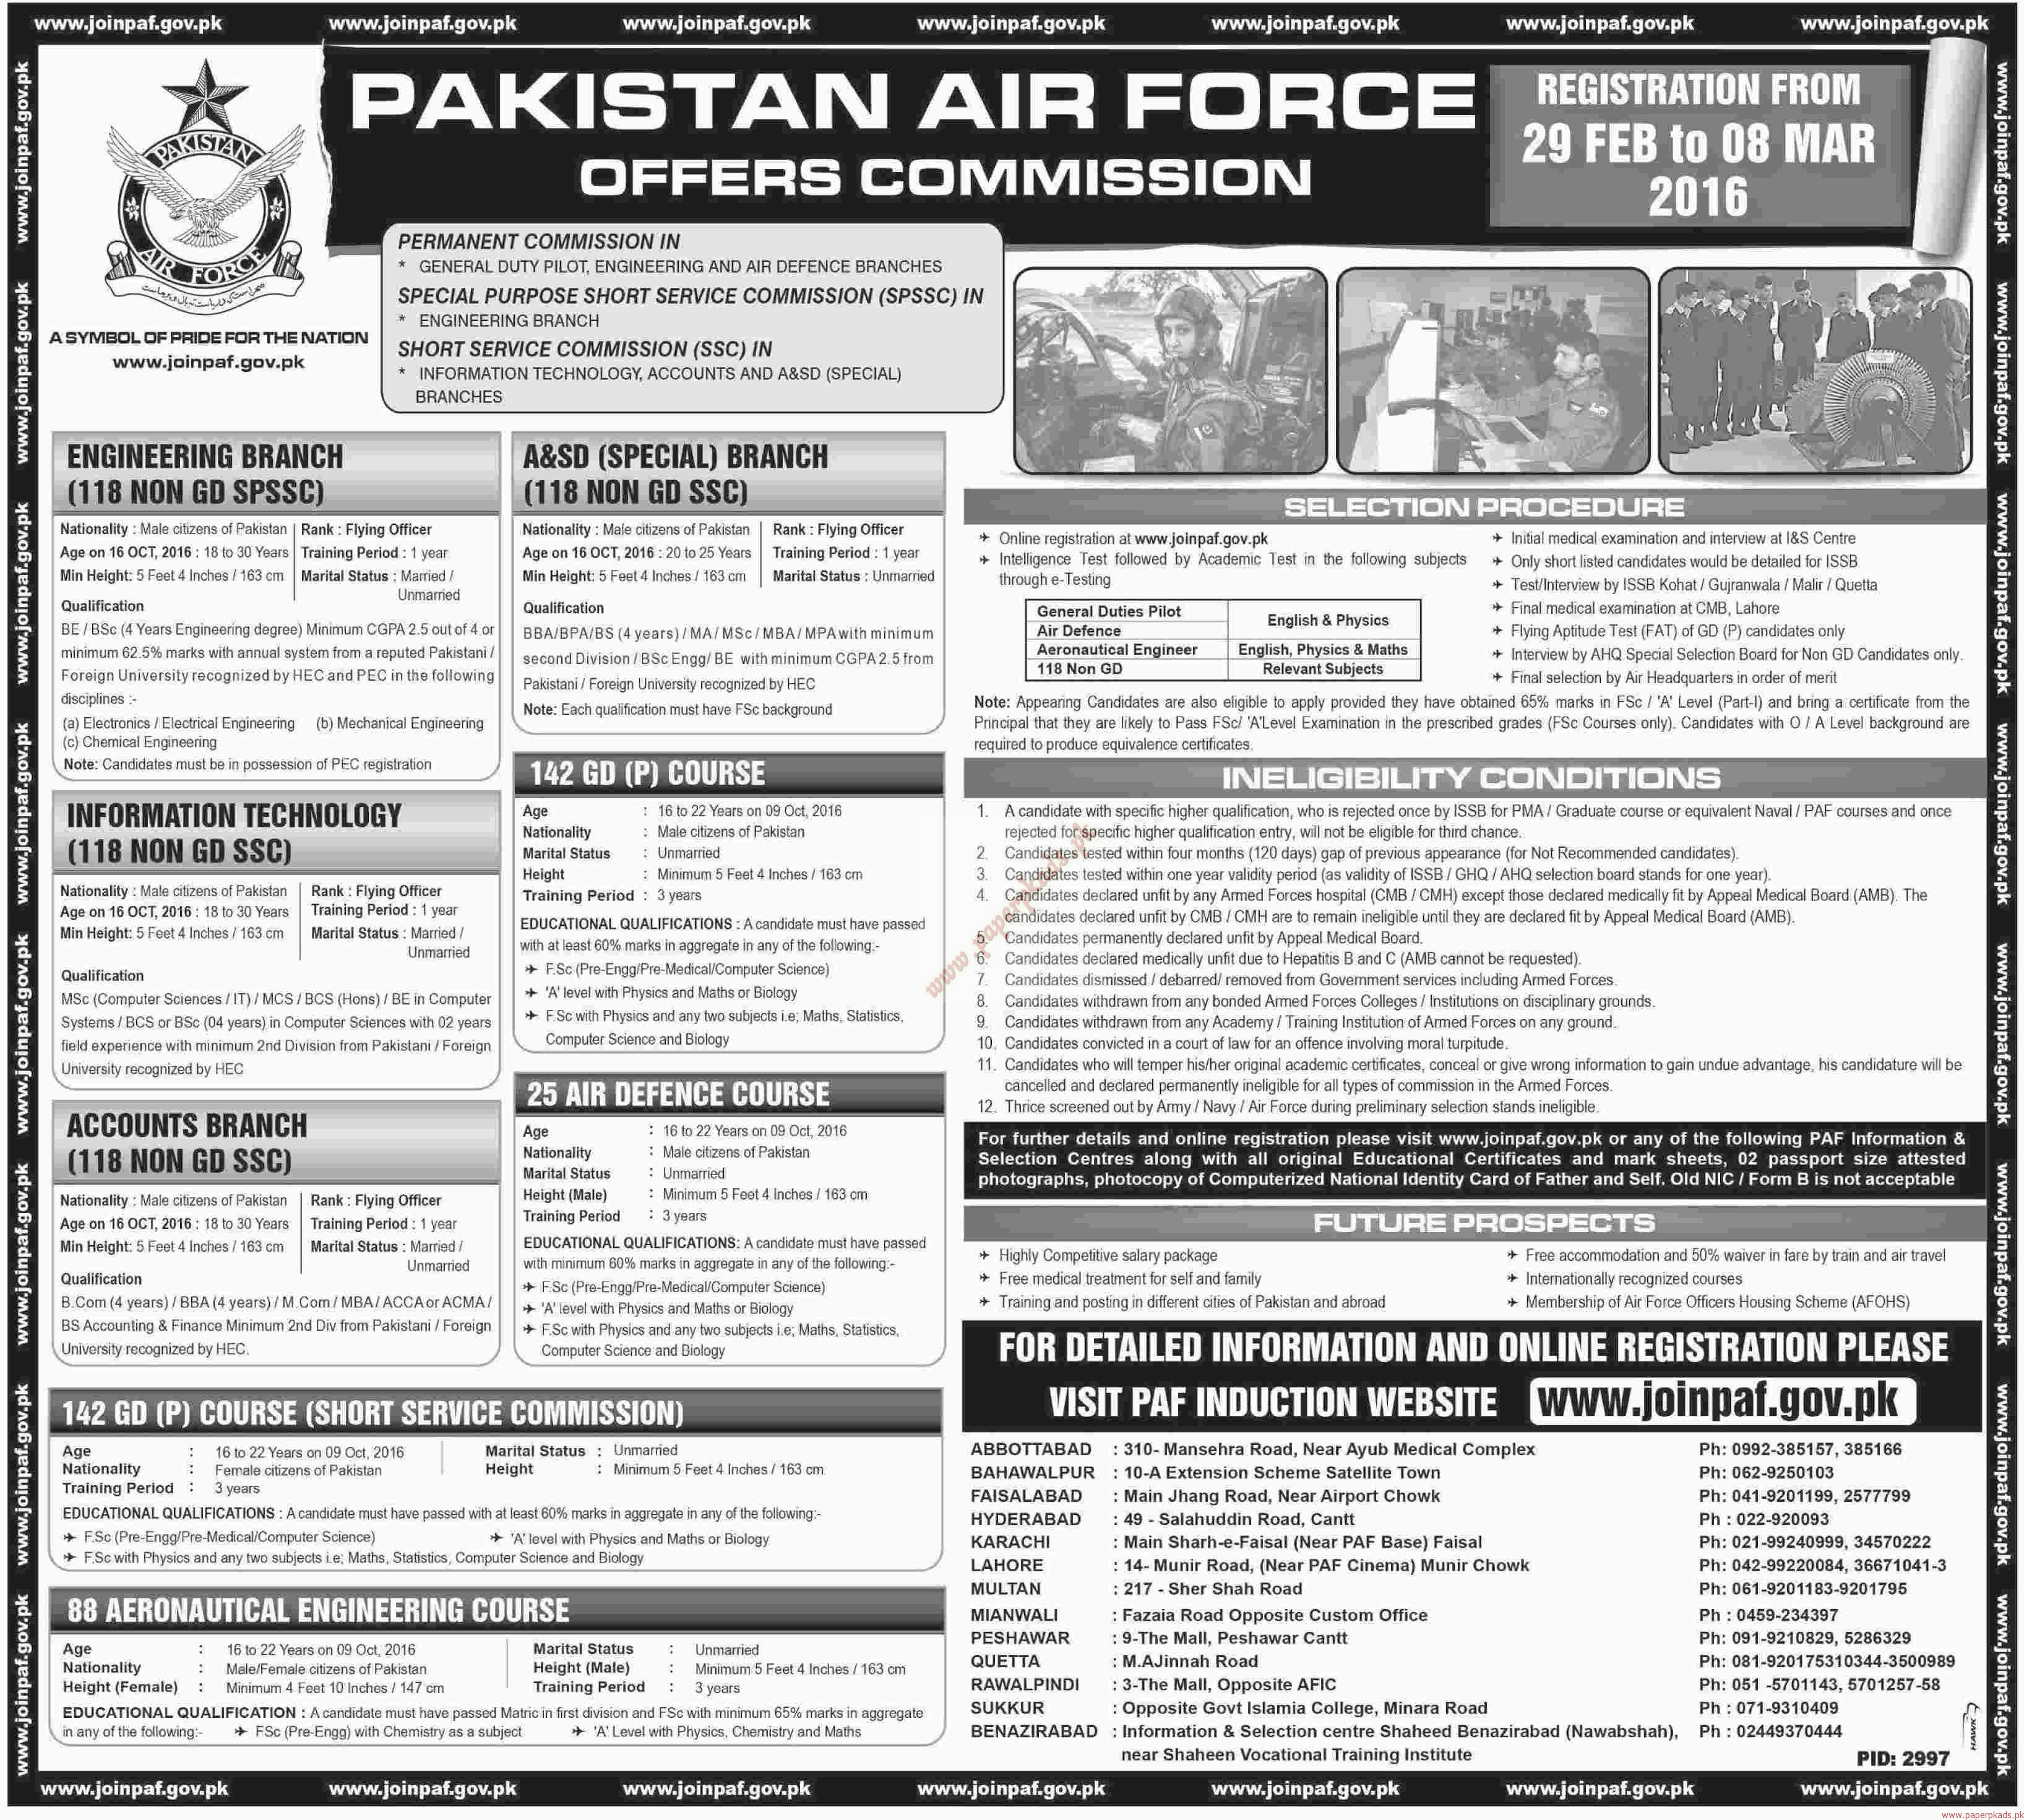 air force jobs dawn jobs ads 28 february 2016 pakistan air force jobs dawn jobs ads 28 february 2016 air force aeronautical engineer sample resume - Air Force Computer Engineer Sample Resume